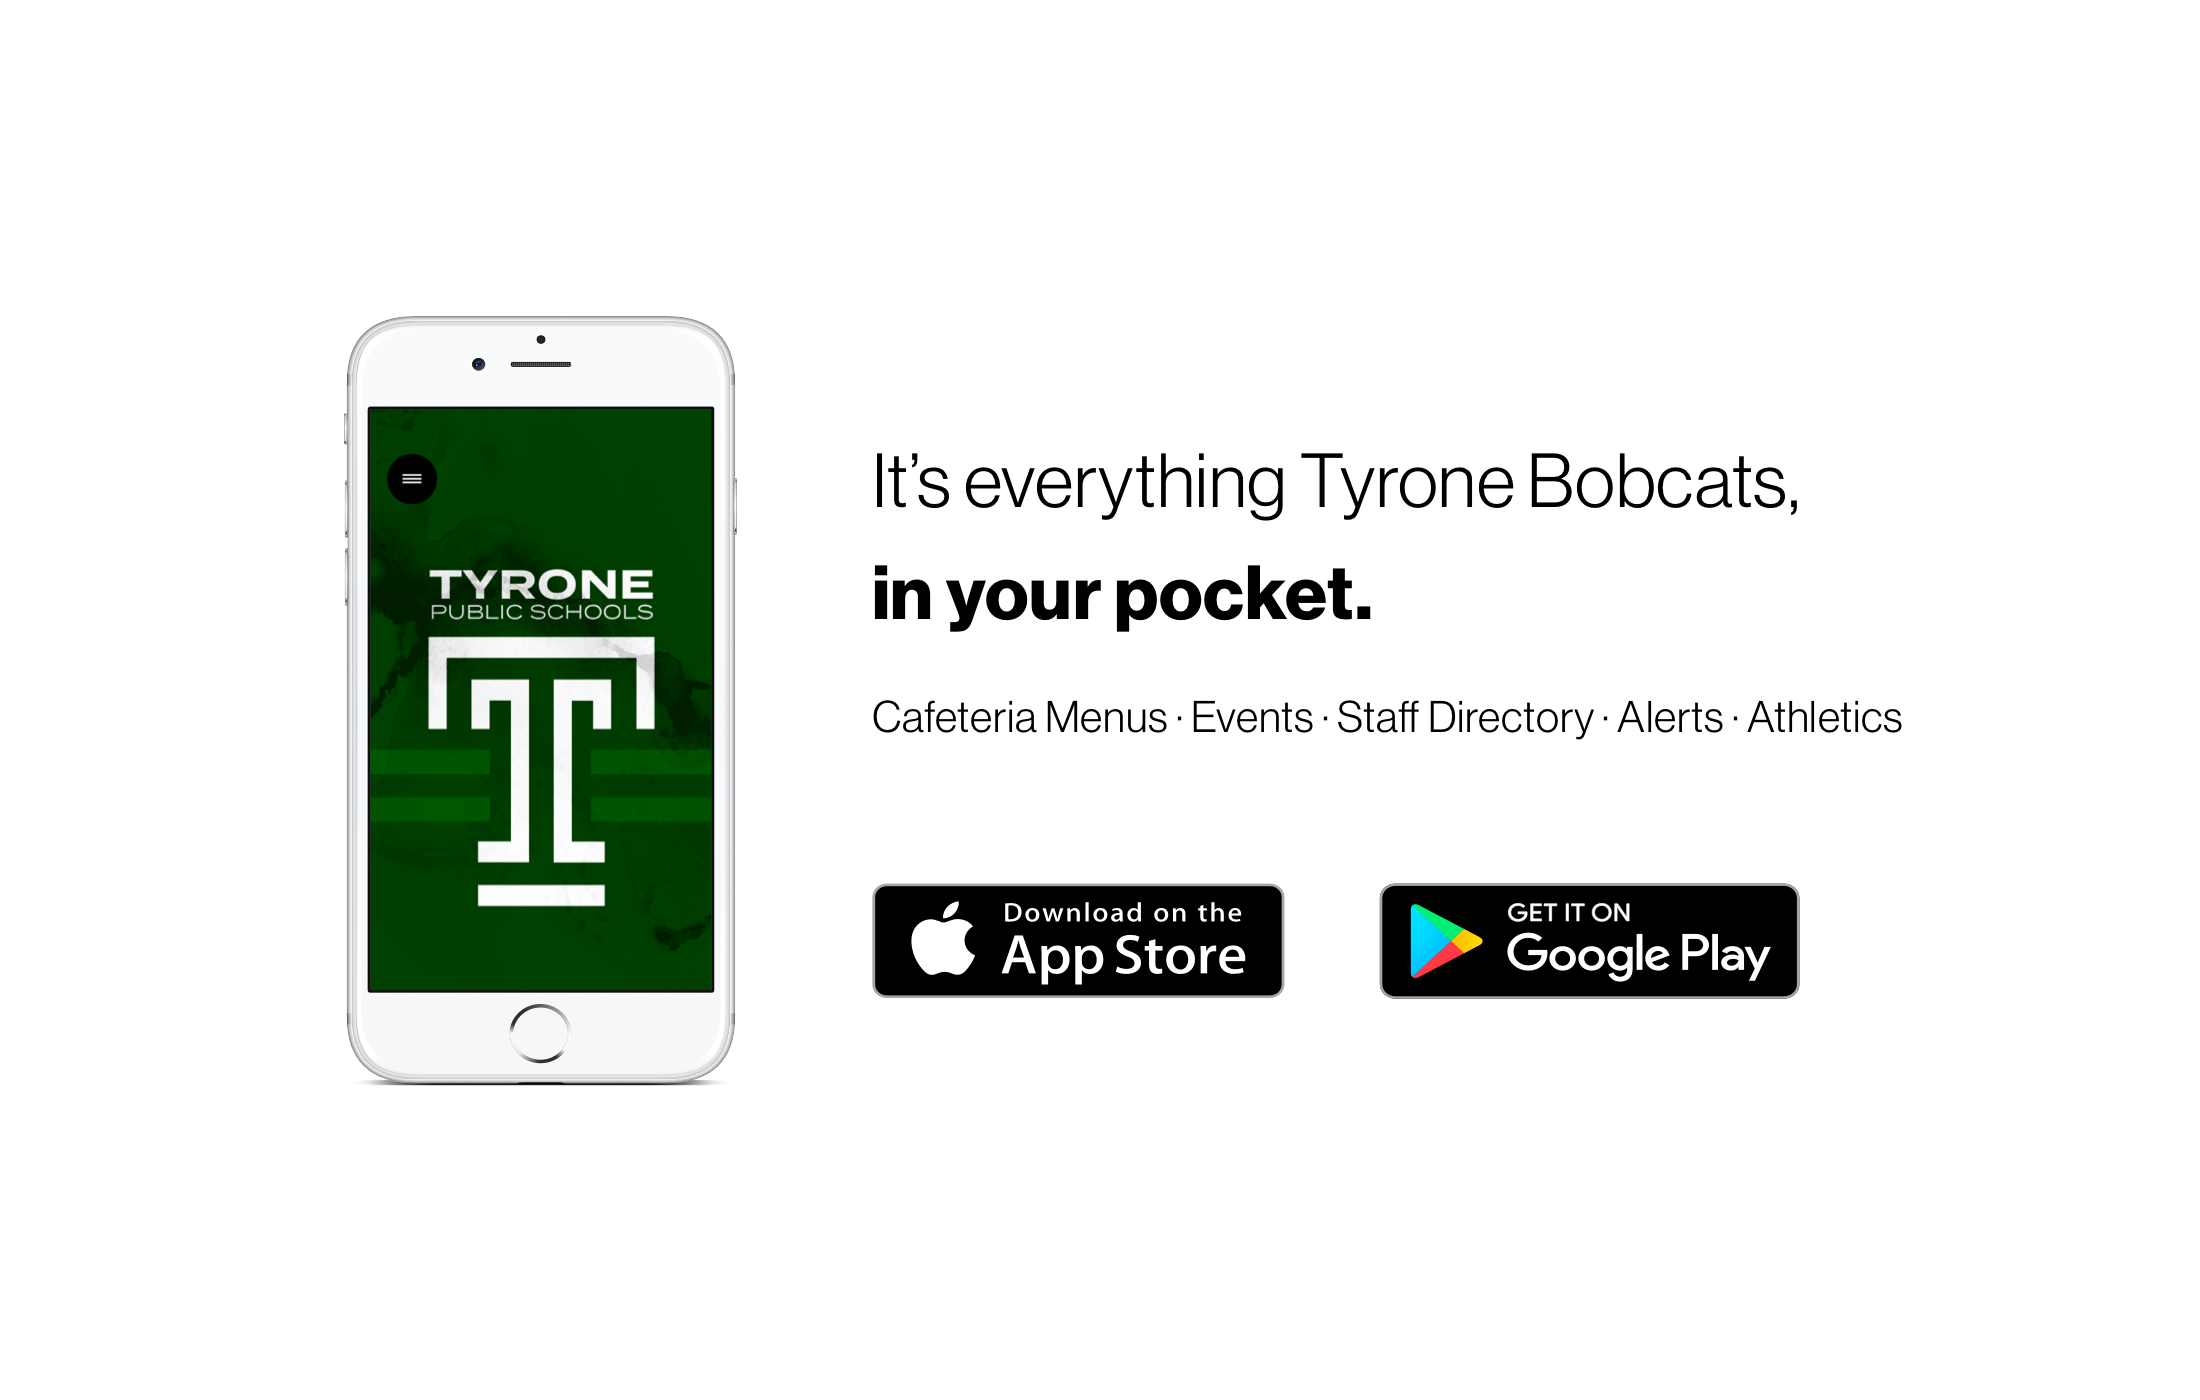 It's everything Tyrone Bobcats in your pocket